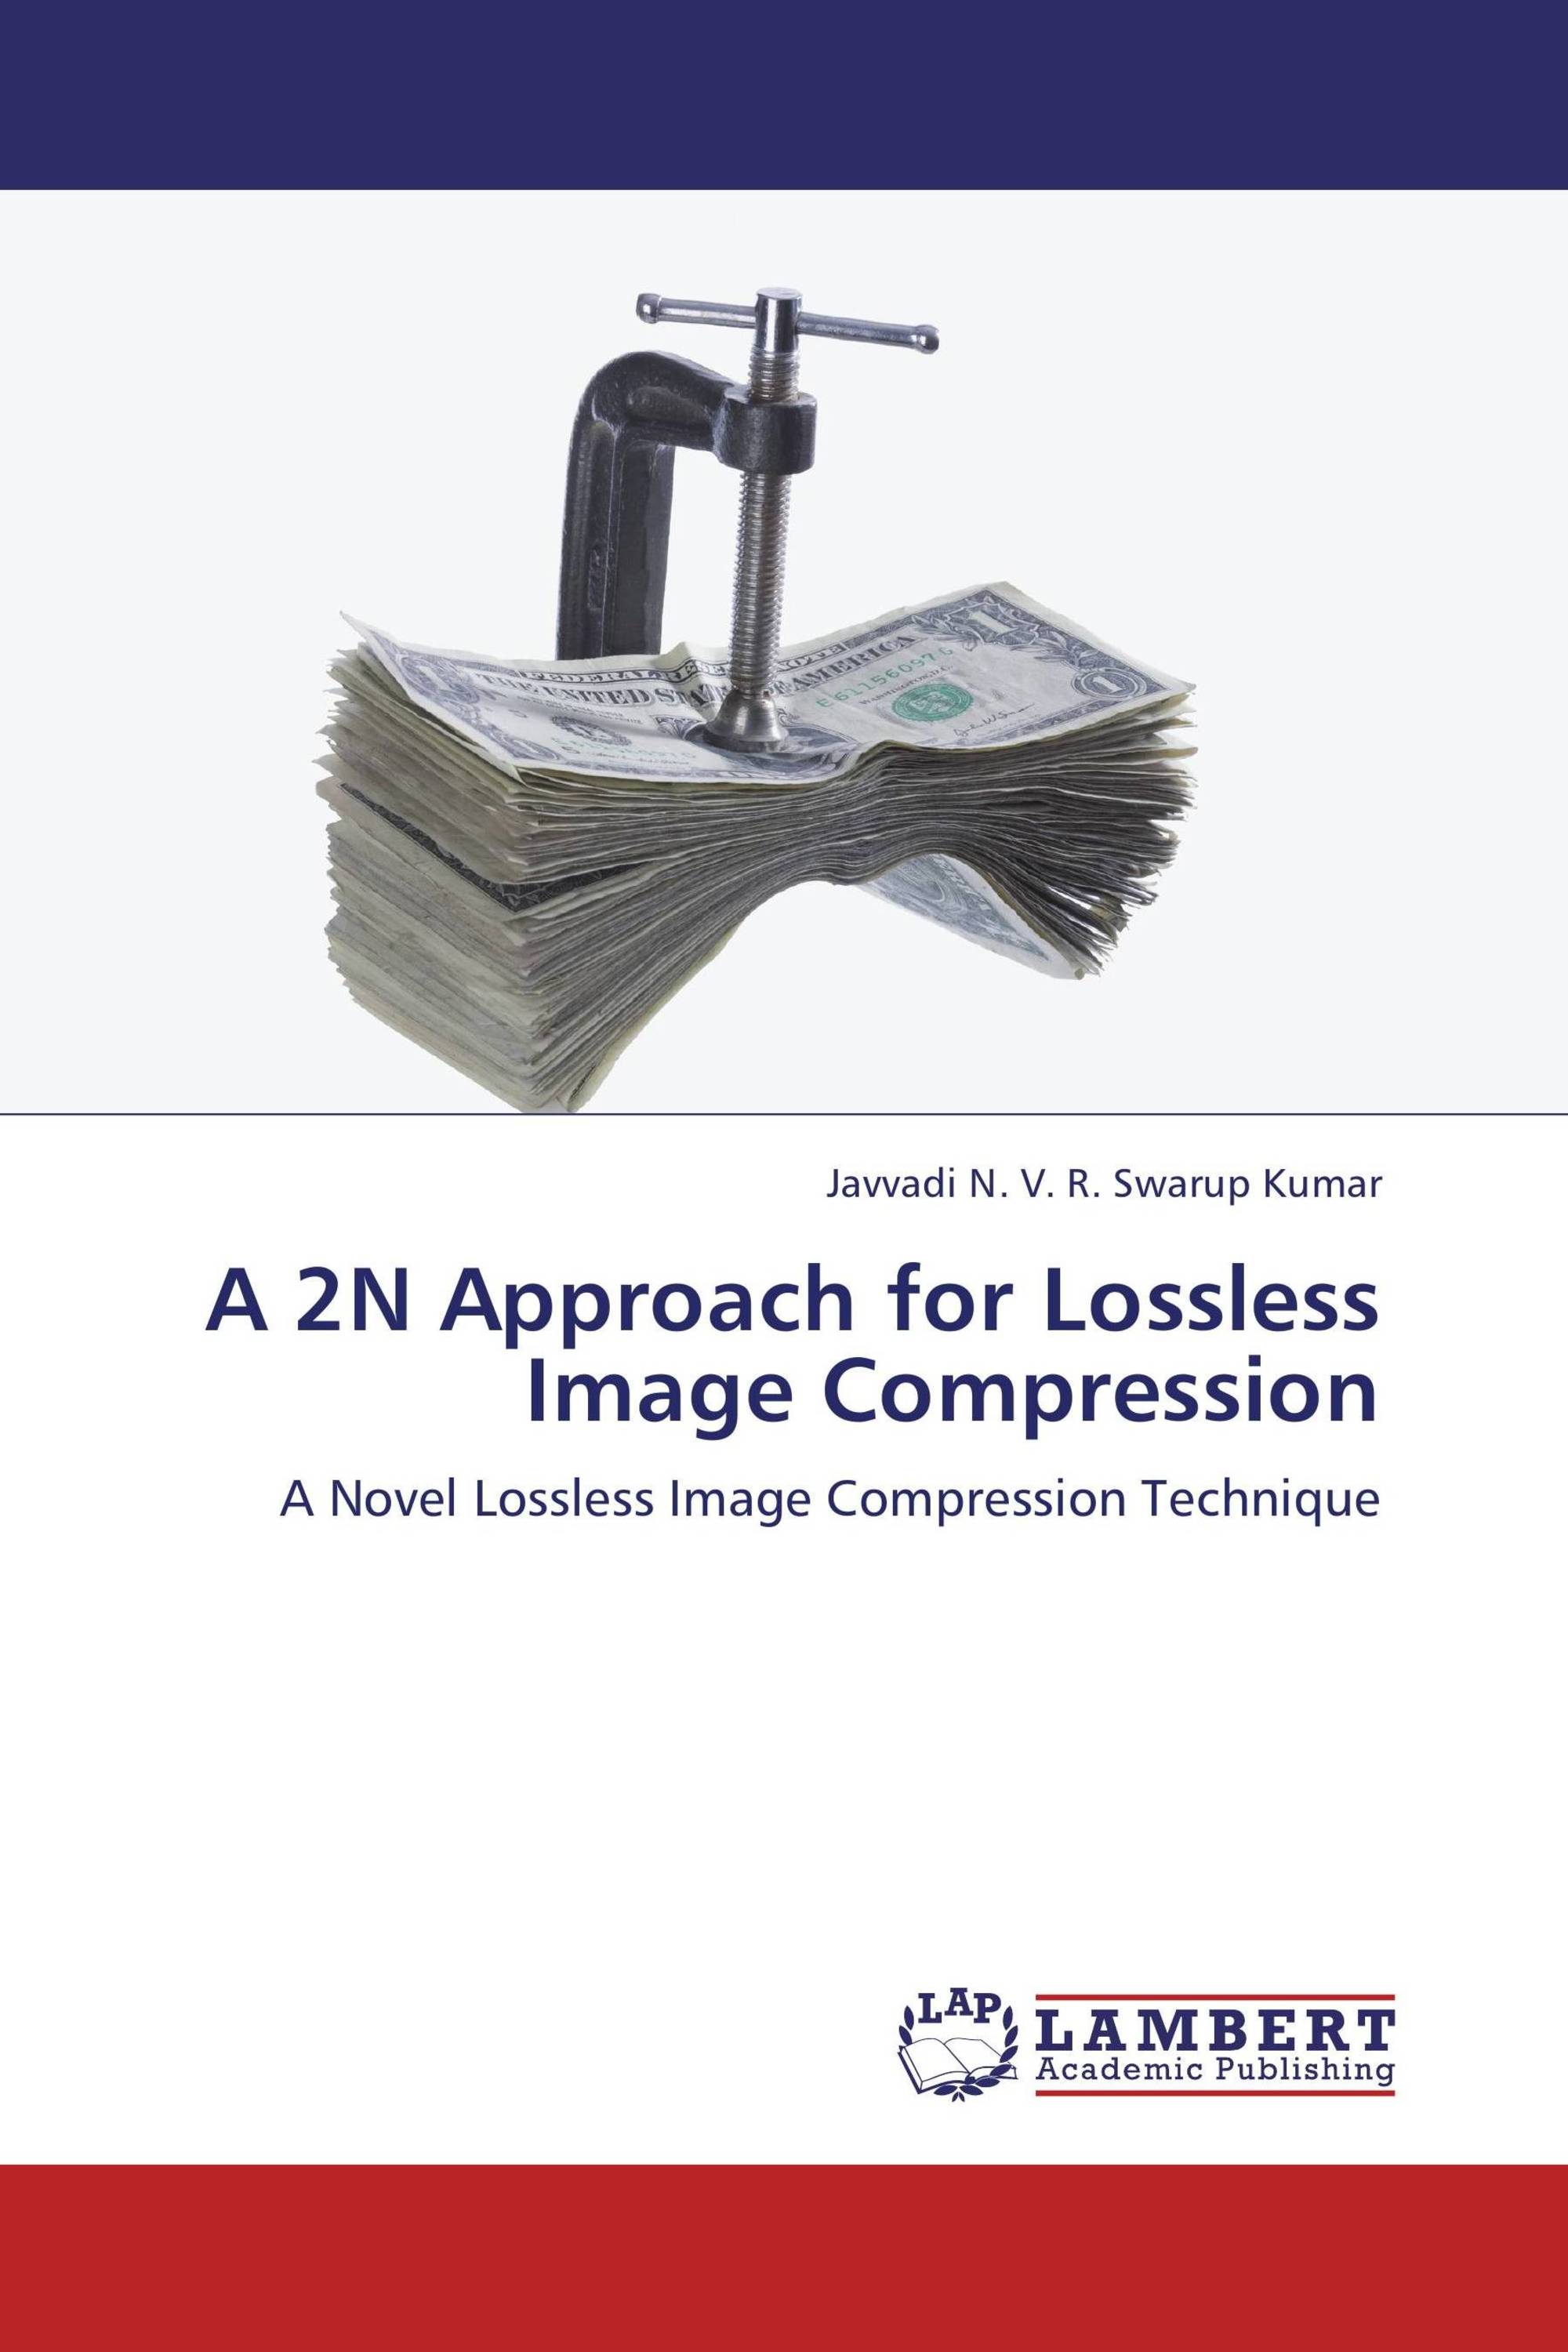 A 2N Approach for Lossless Image Compression